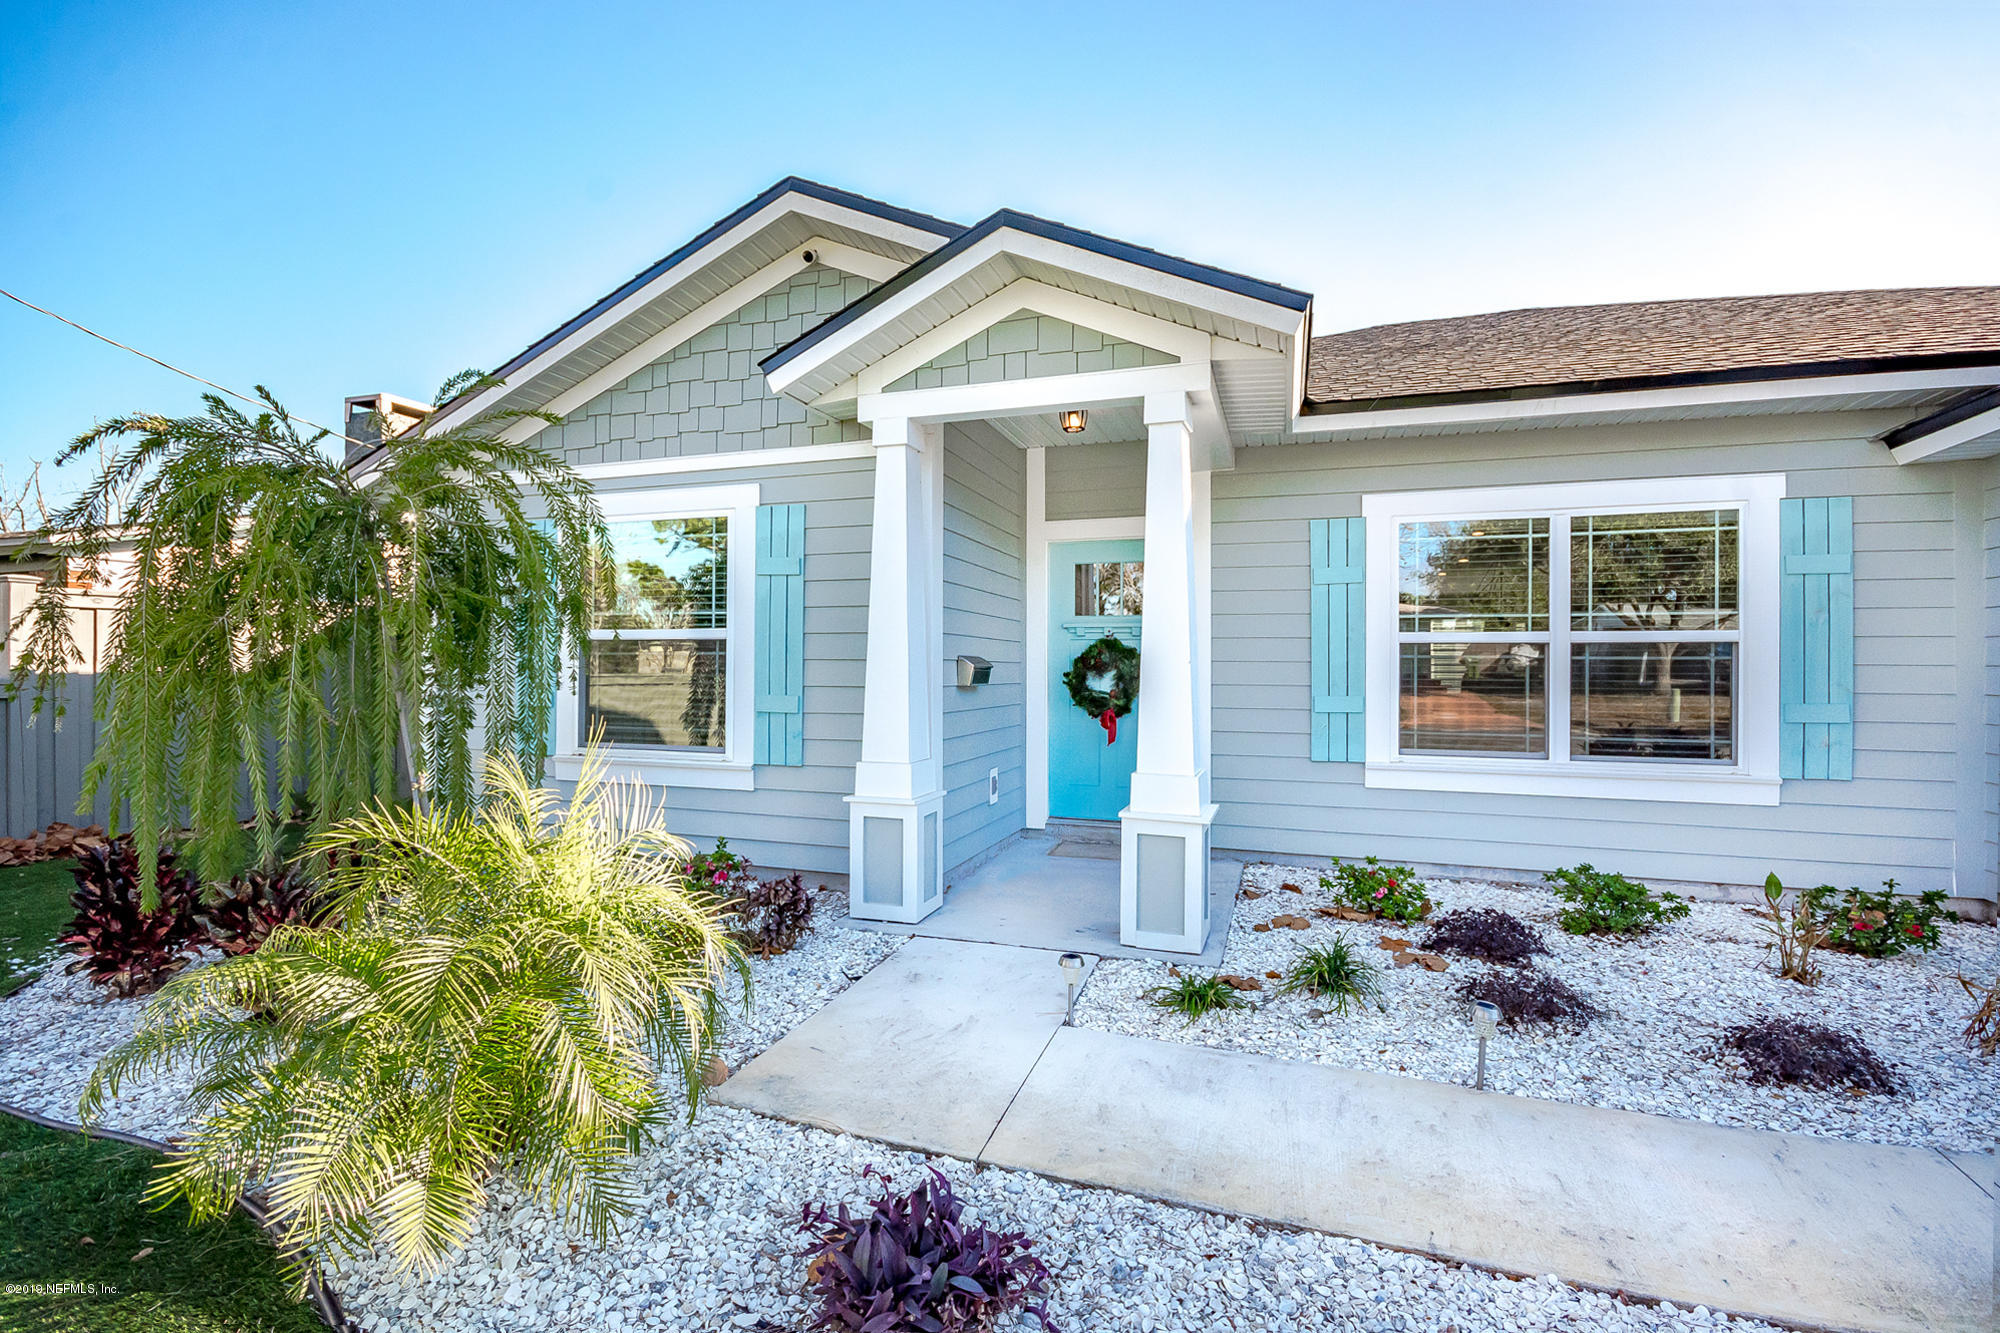 27 BURLING, JACKSONVILLE BEACH, FLORIDA 32250, 4 Bedrooms Bedrooms, ,2 BathroomsBathrooms,Residential - single family,For sale,BURLING,974667